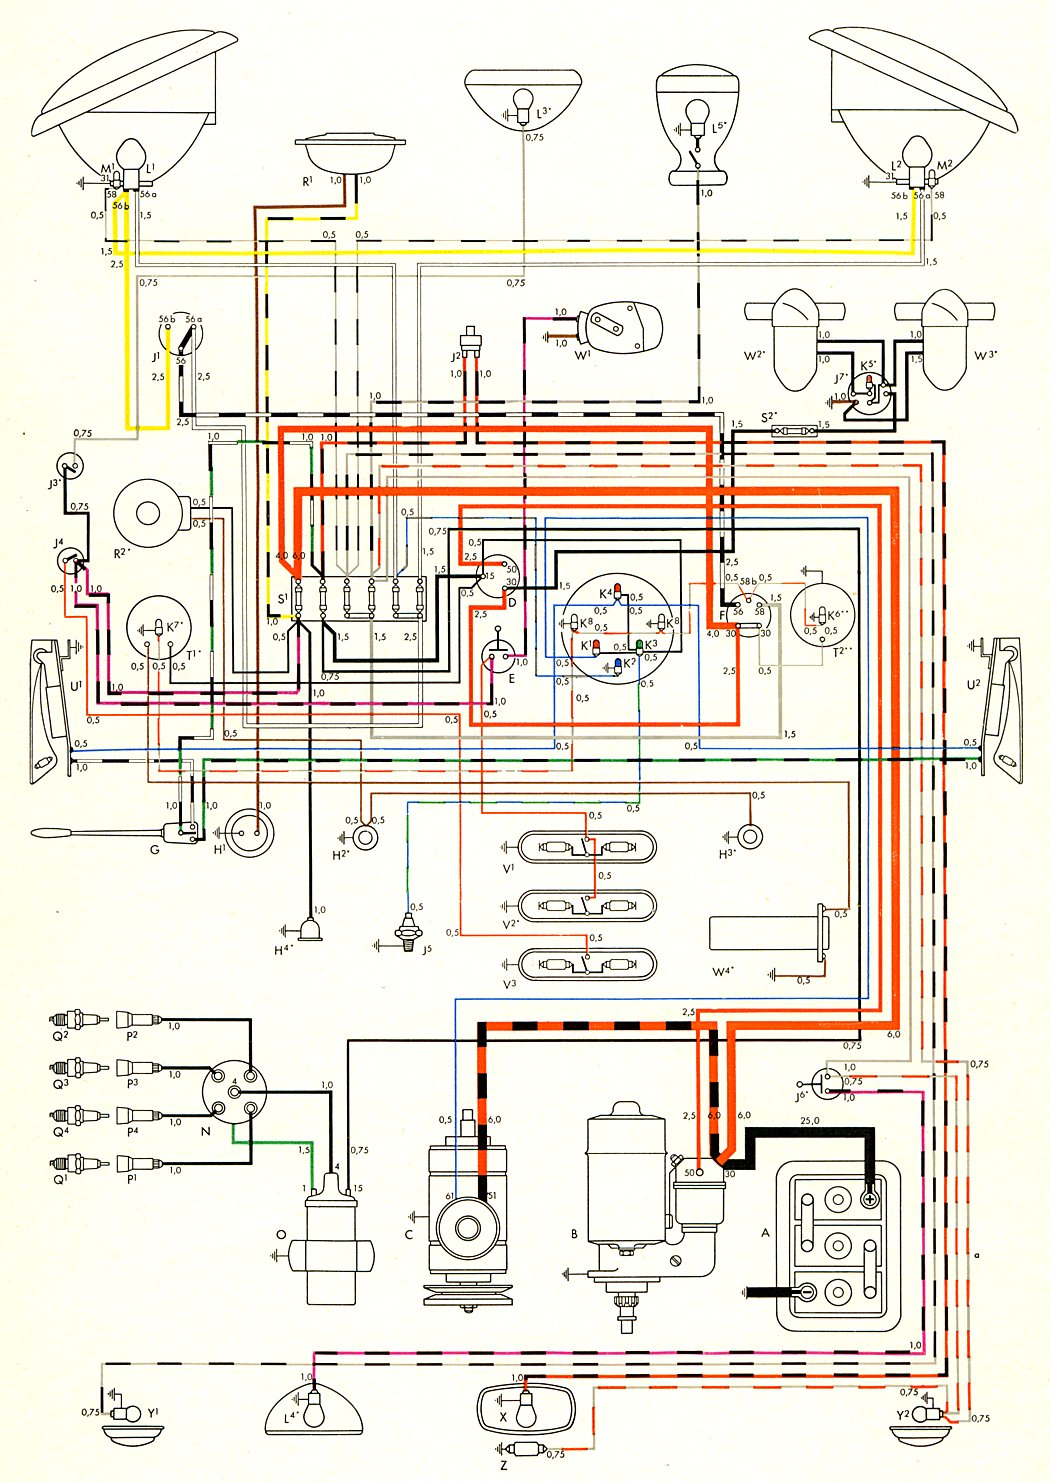 thesamba com type 2 wiring diagrams rh thesamba com vw transporter wiring diagram t5 vw t4 immobiliser wiring diagram